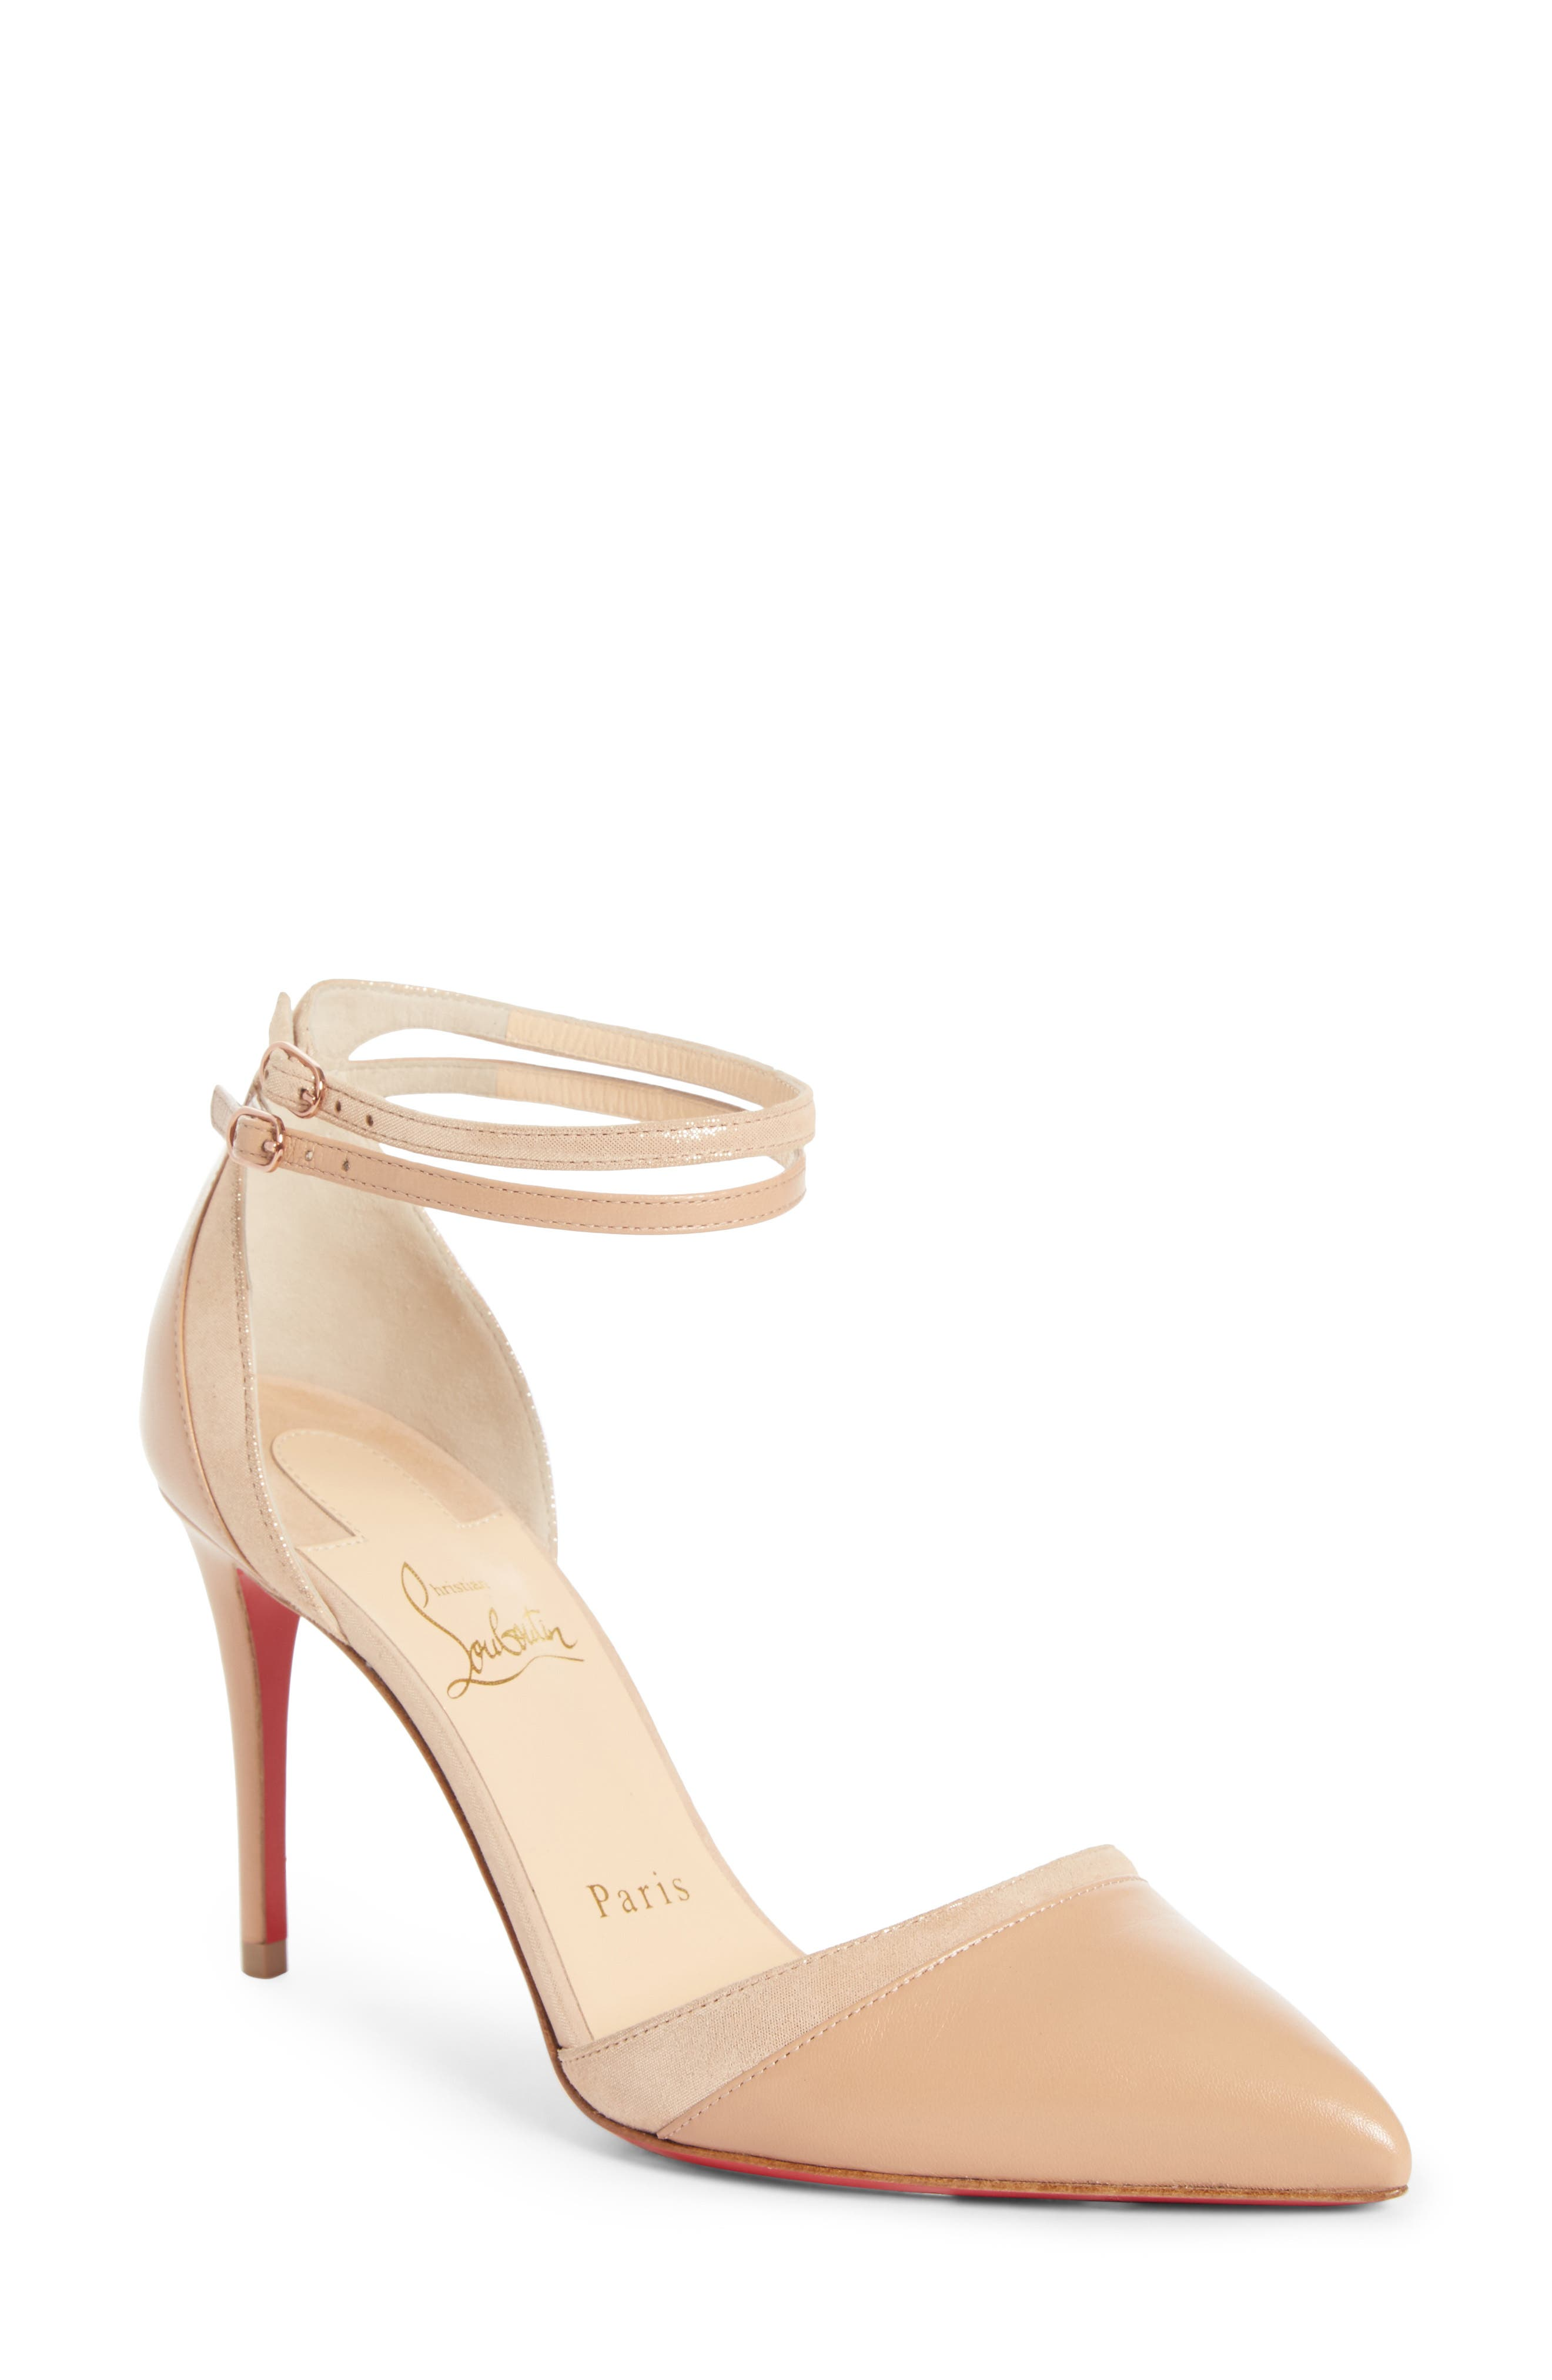 Uptown Ankle Strap Pump,                             Main thumbnail 1, color,                             Nude